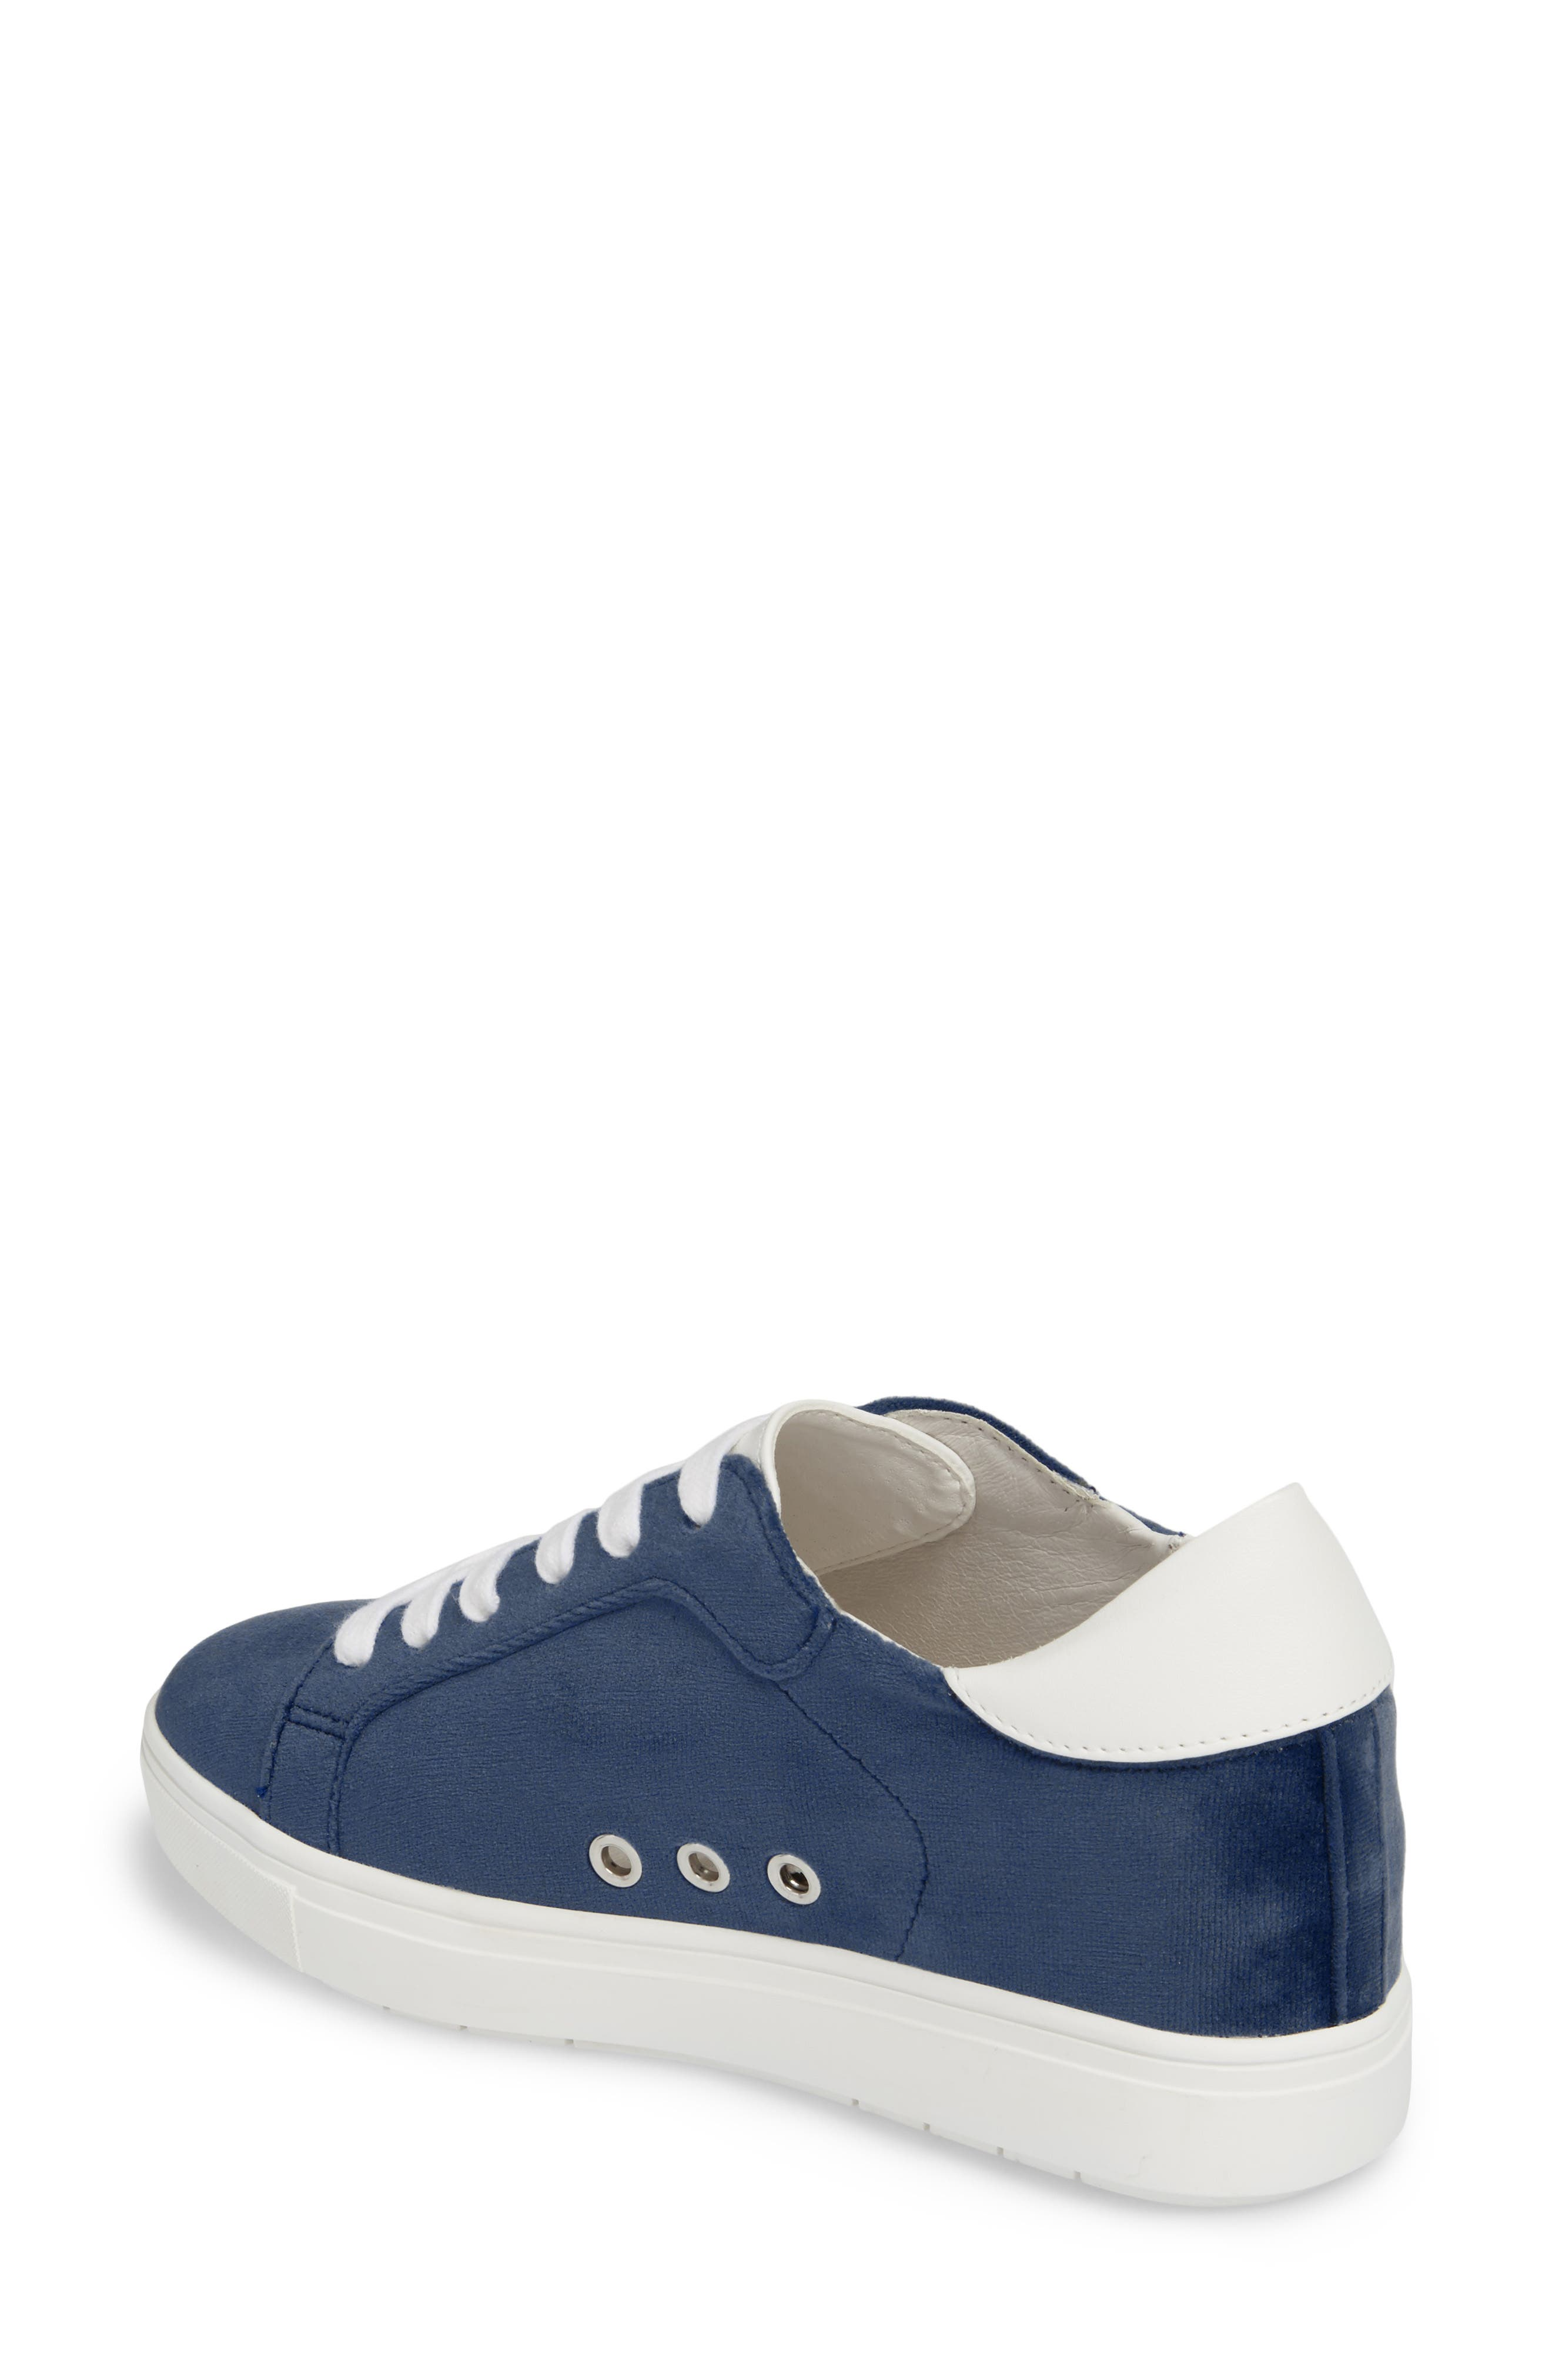 Steal Concealed Wedge Sneaker,                             Alternate thumbnail 7, color,